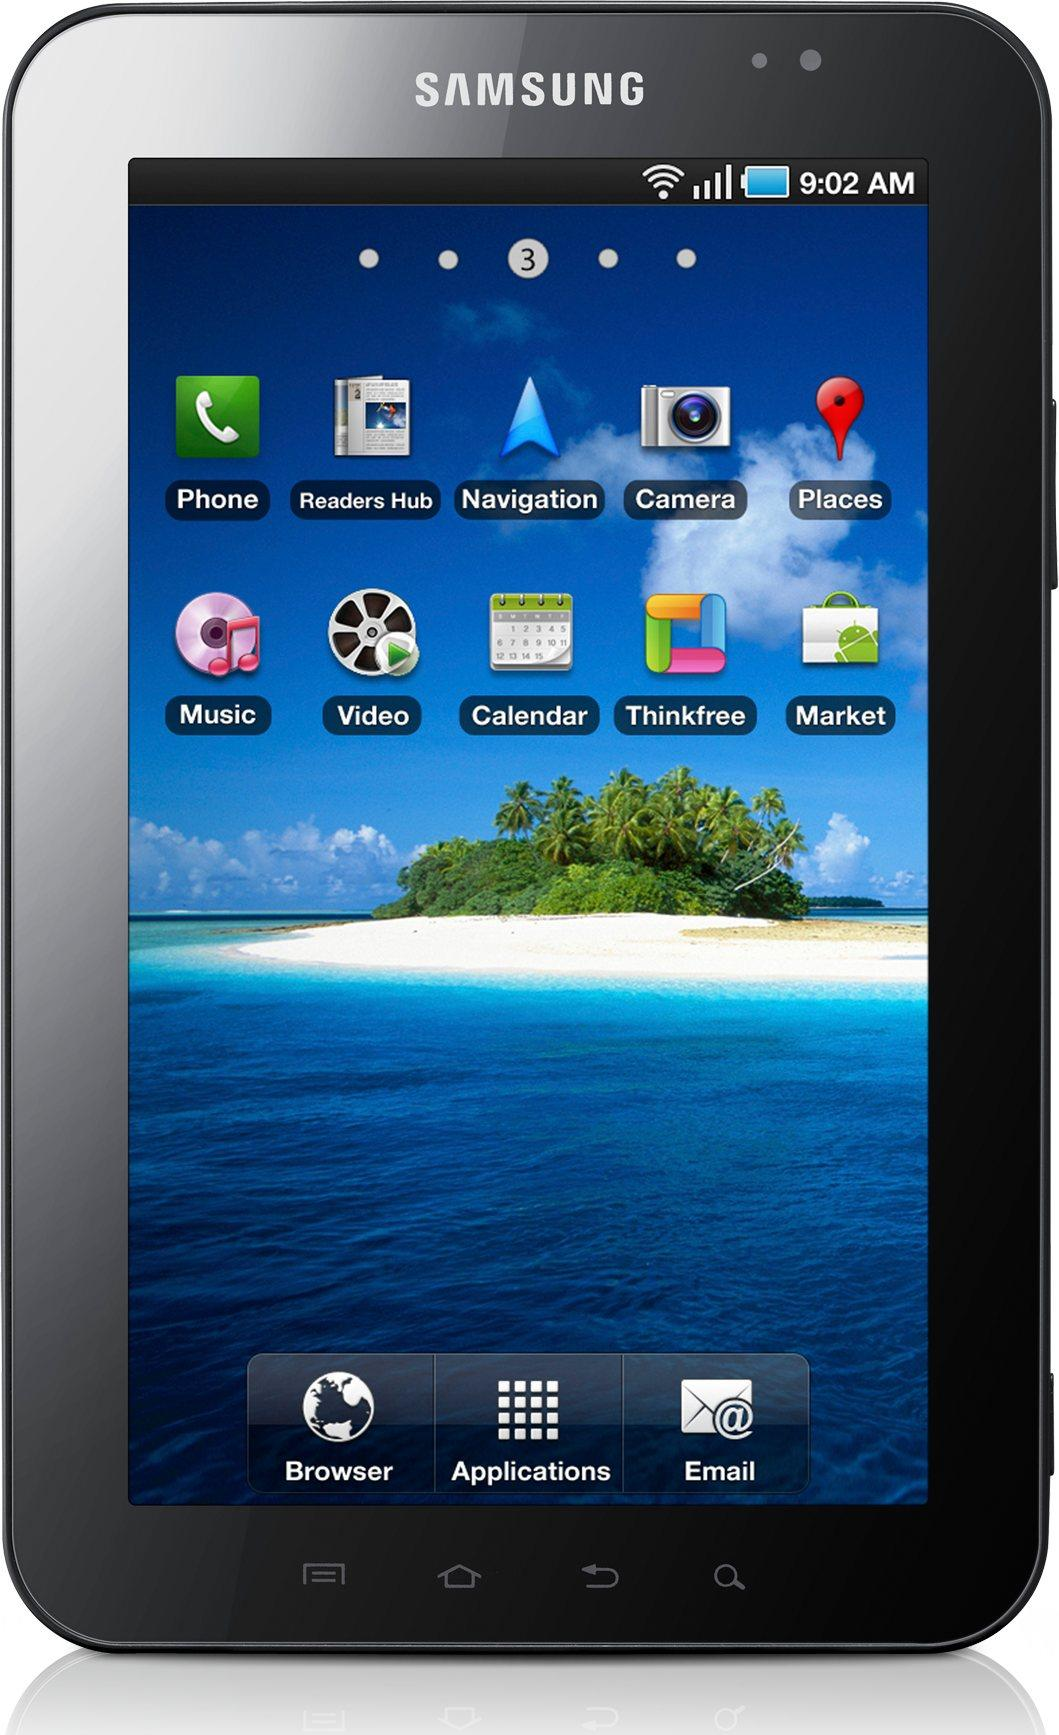 Galaxy Tab (3G + WiFi) (Latin) GT-P1000L